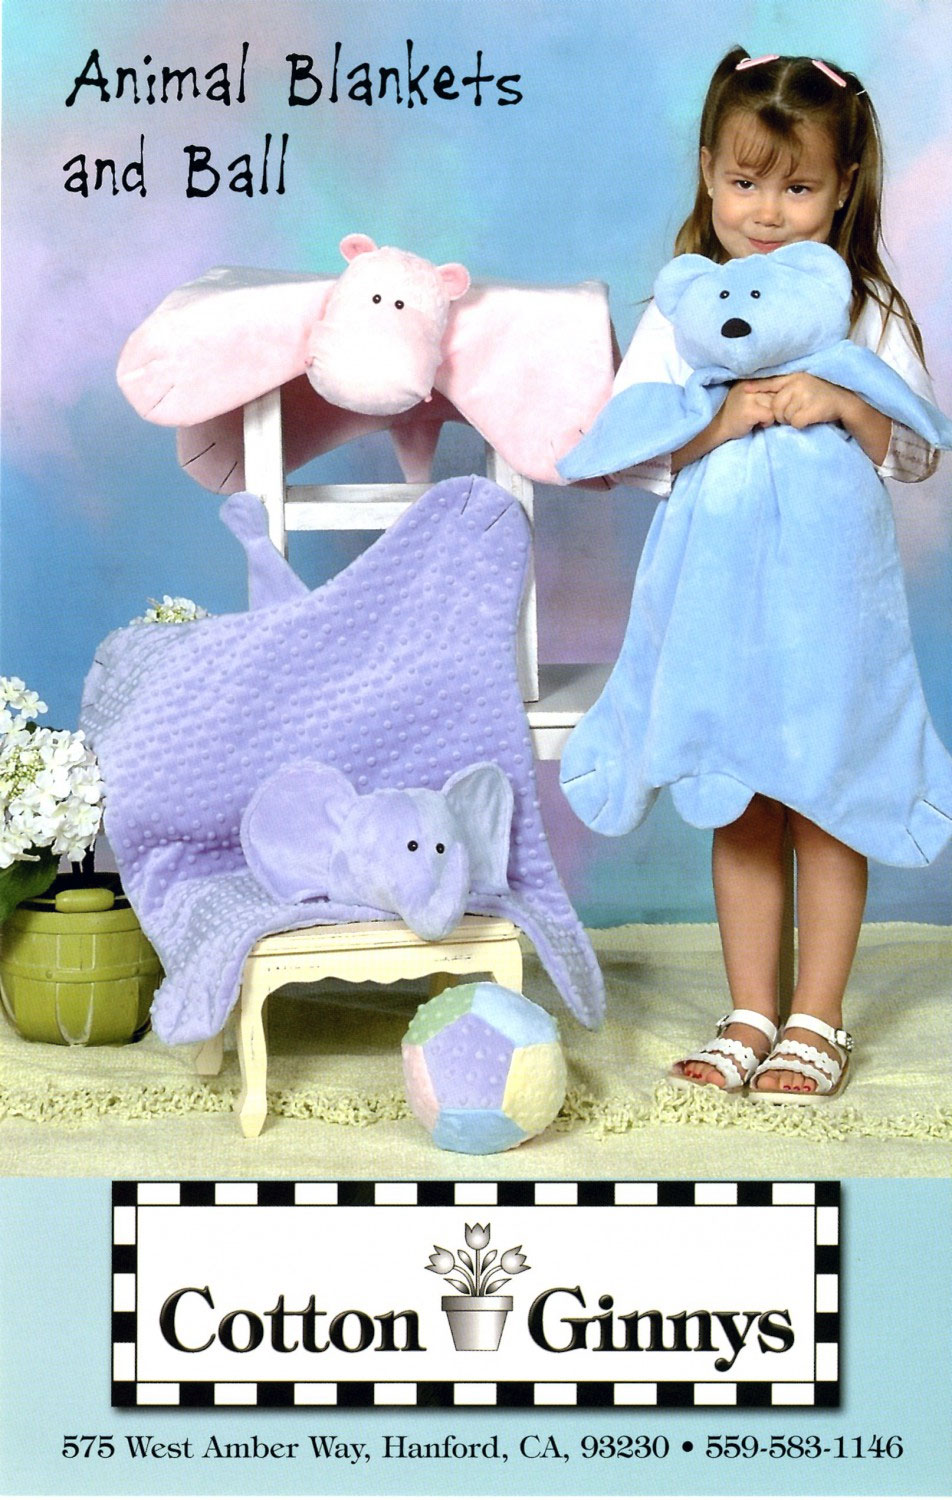 Animal-Blankets-and-Ball-sewing-pattern-Cotton-Ginnys-front